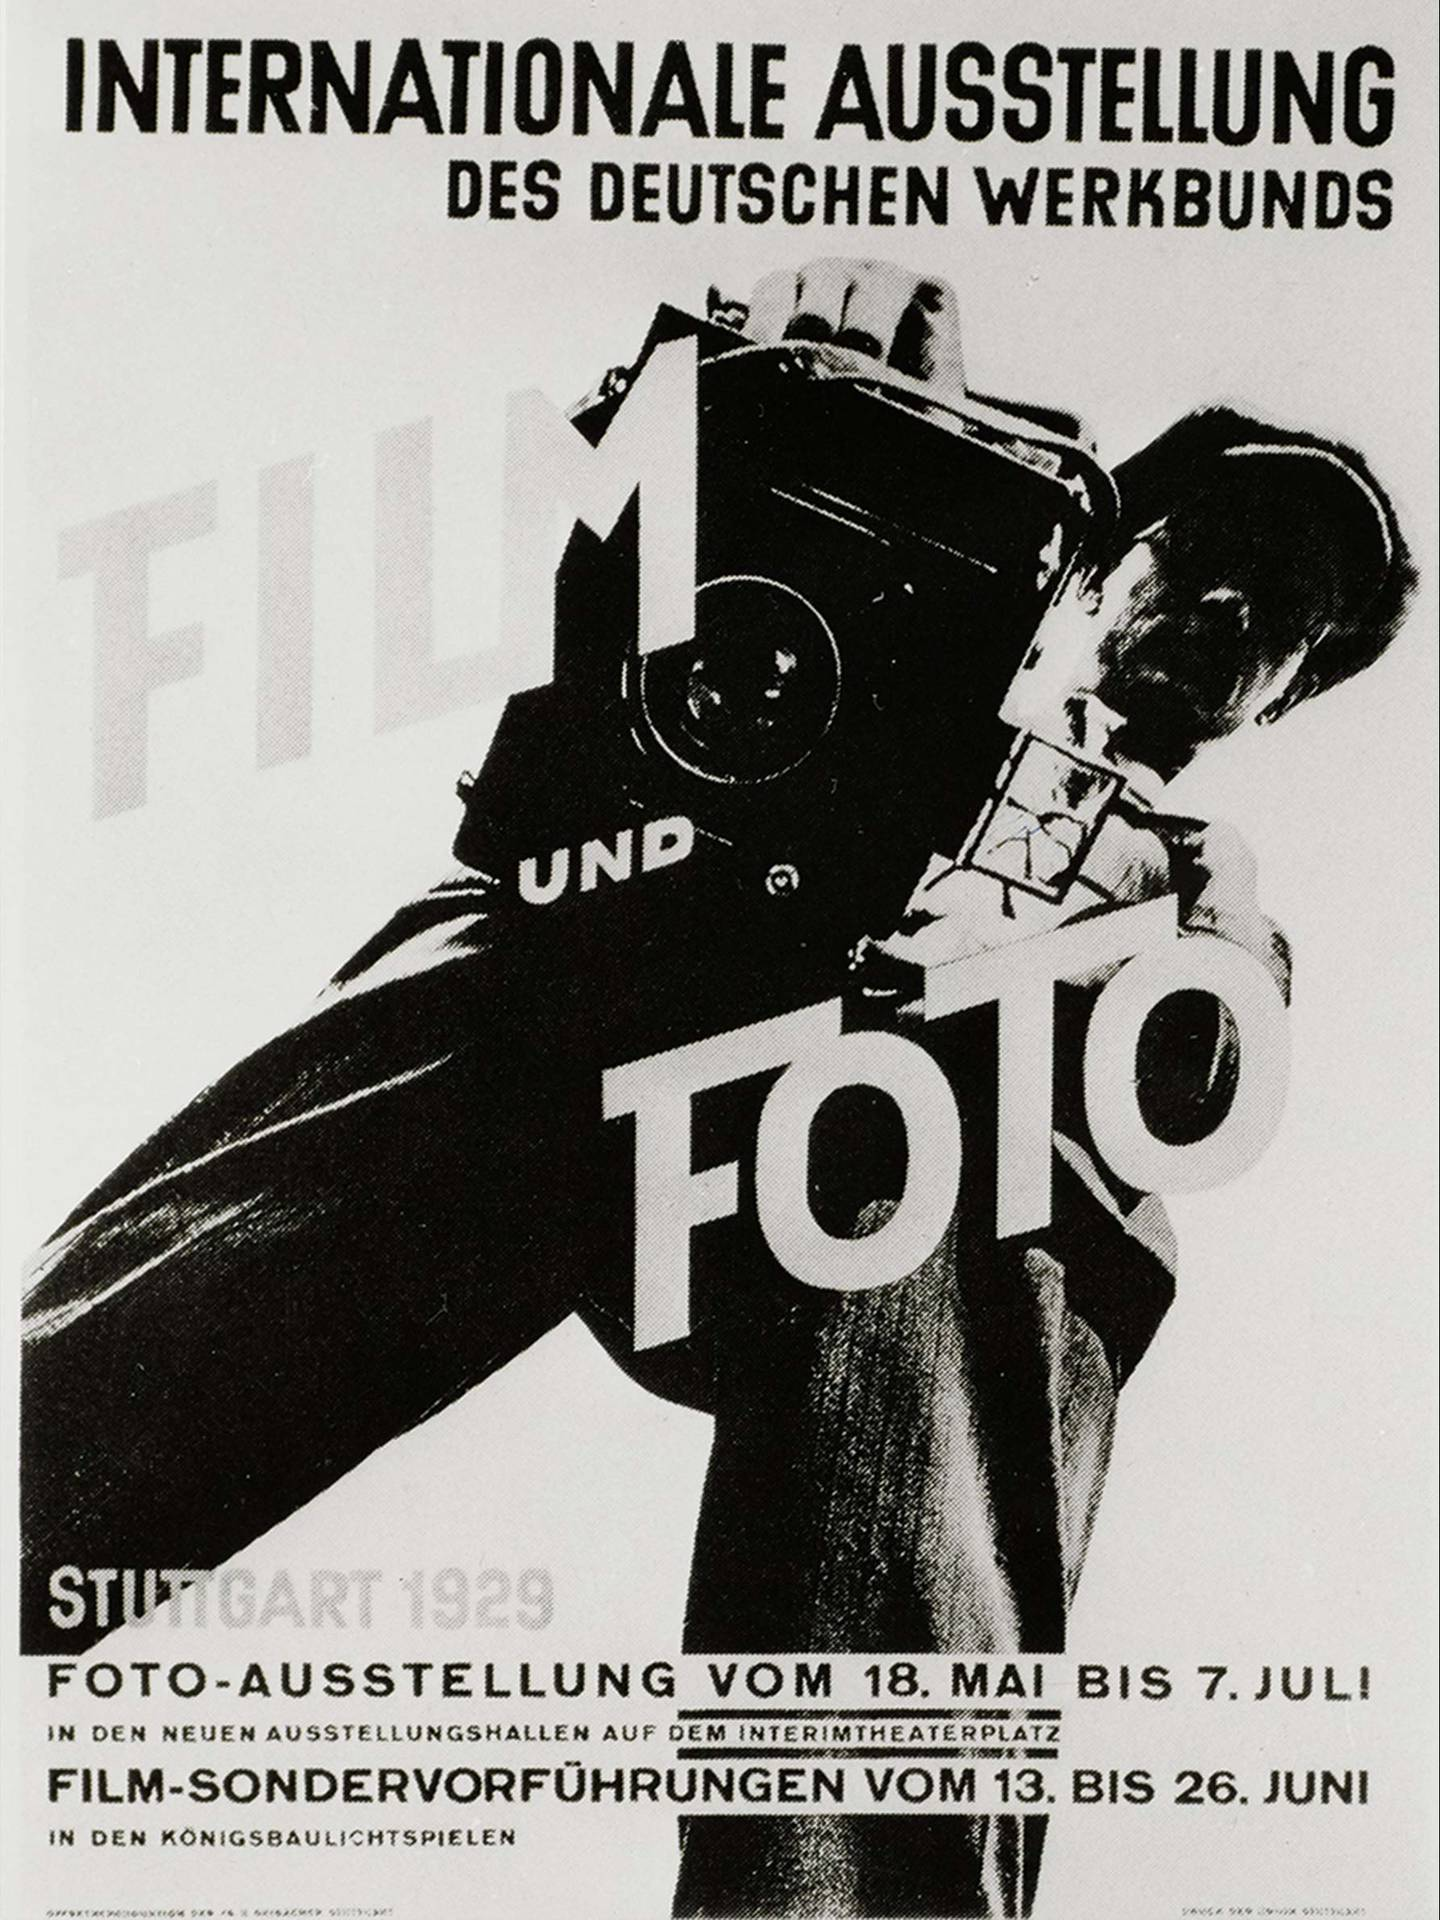 "International exhibition of the German Werkbund, ""Film und Foto"" (film and photo), poster, Stuttgart, 1929"